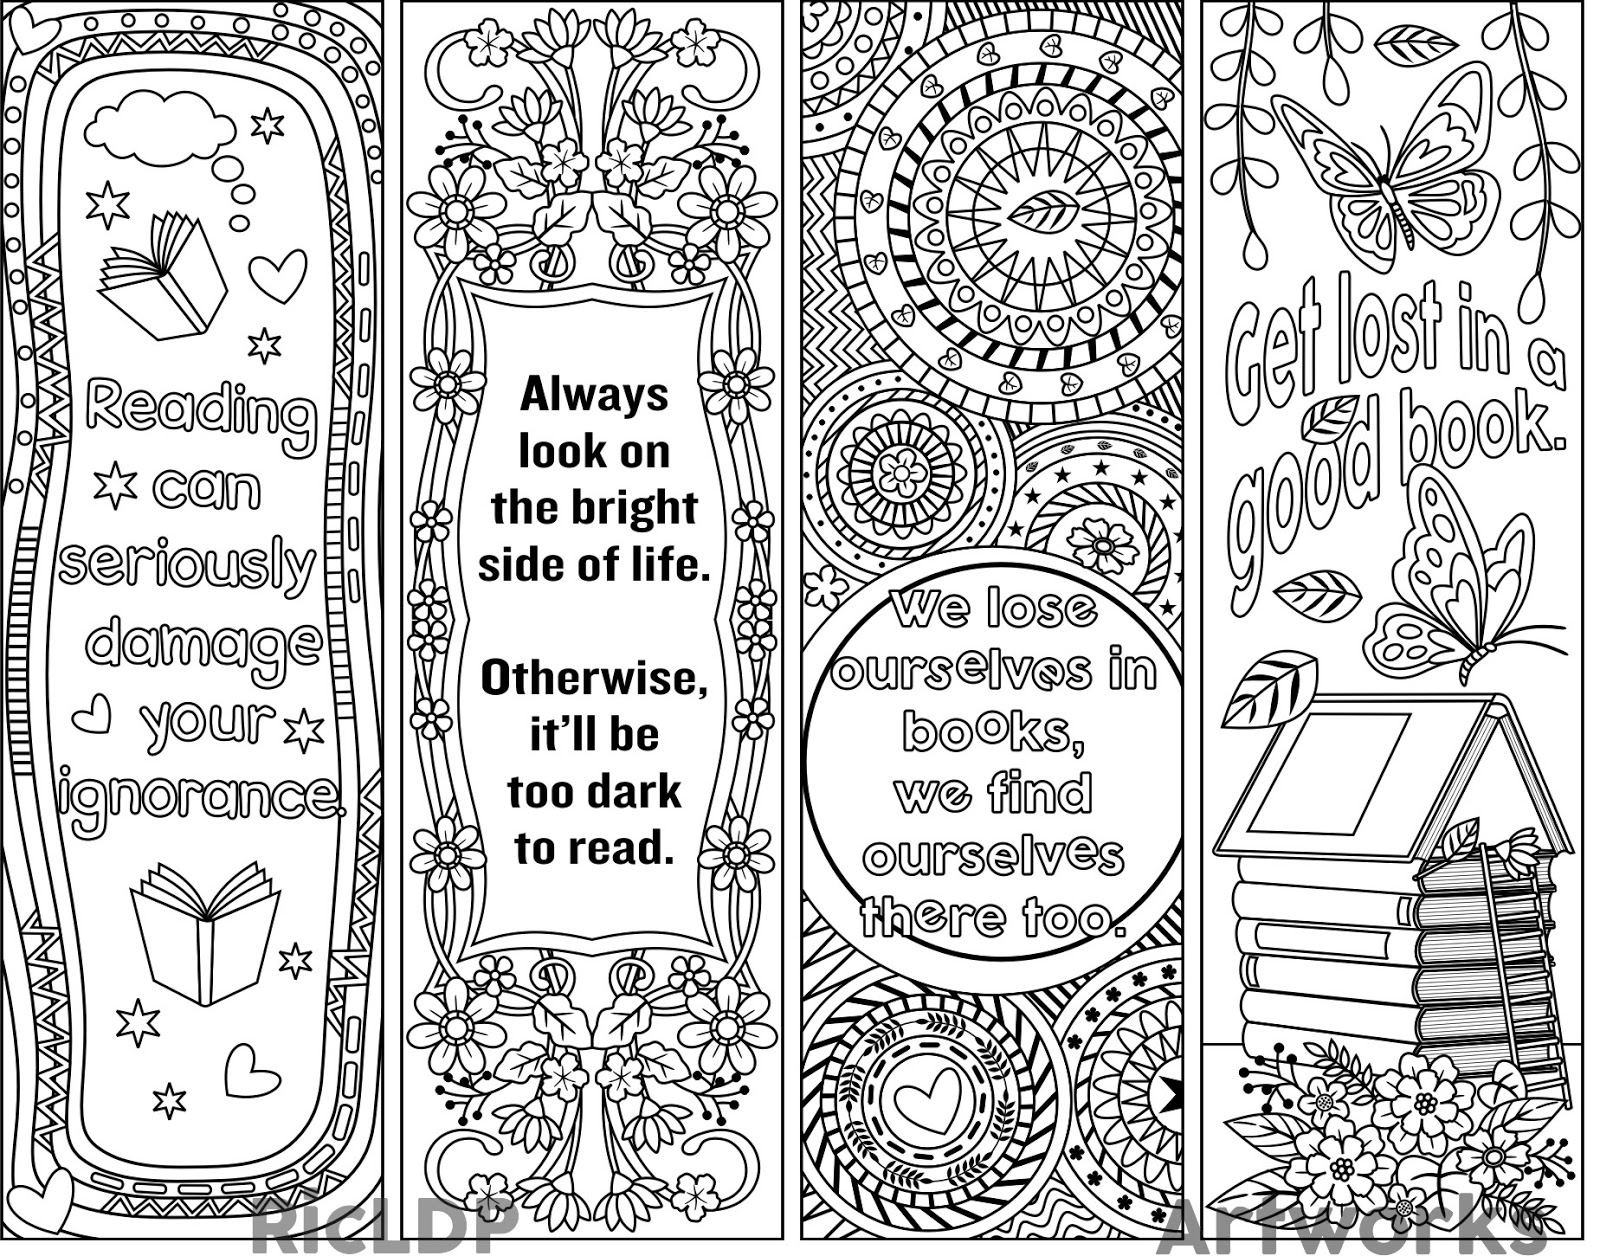 Printable Coloring Bookmarks Free : Ricldp artworks printable coloring bookmarks